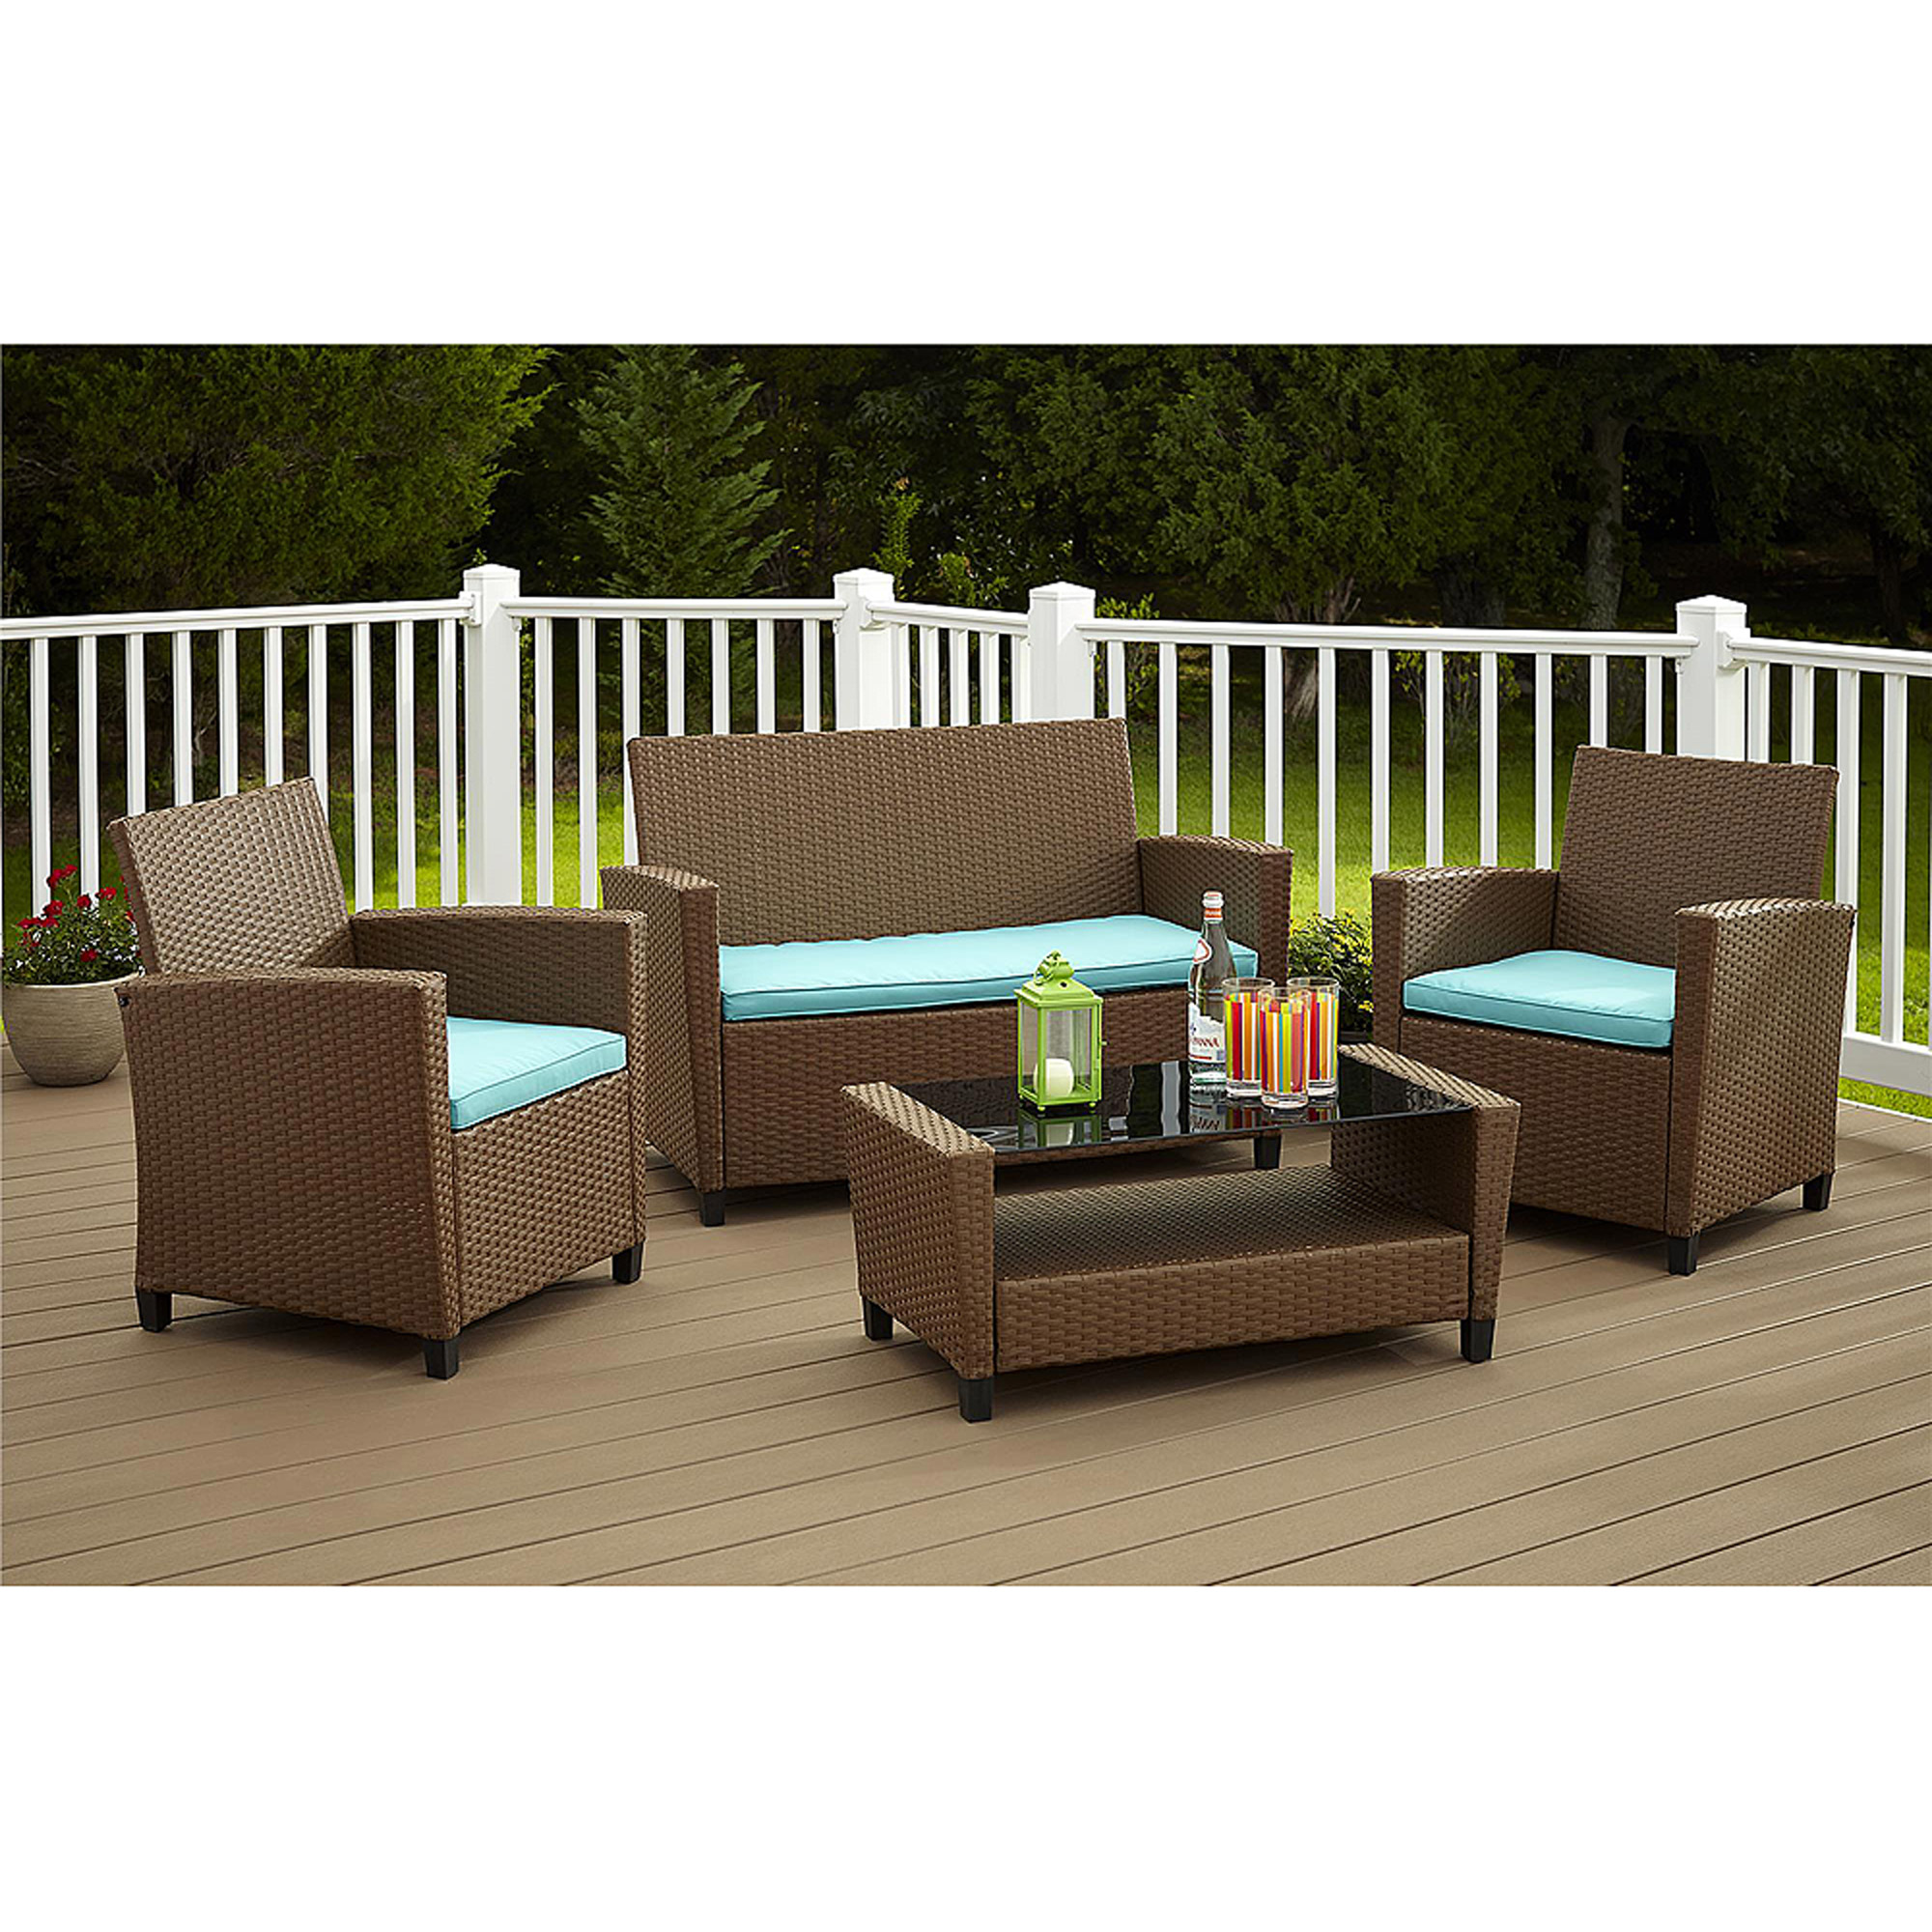 Royal 10 piece outdoor wicker patio furniture set 10b for Outdoor patio furniture sets